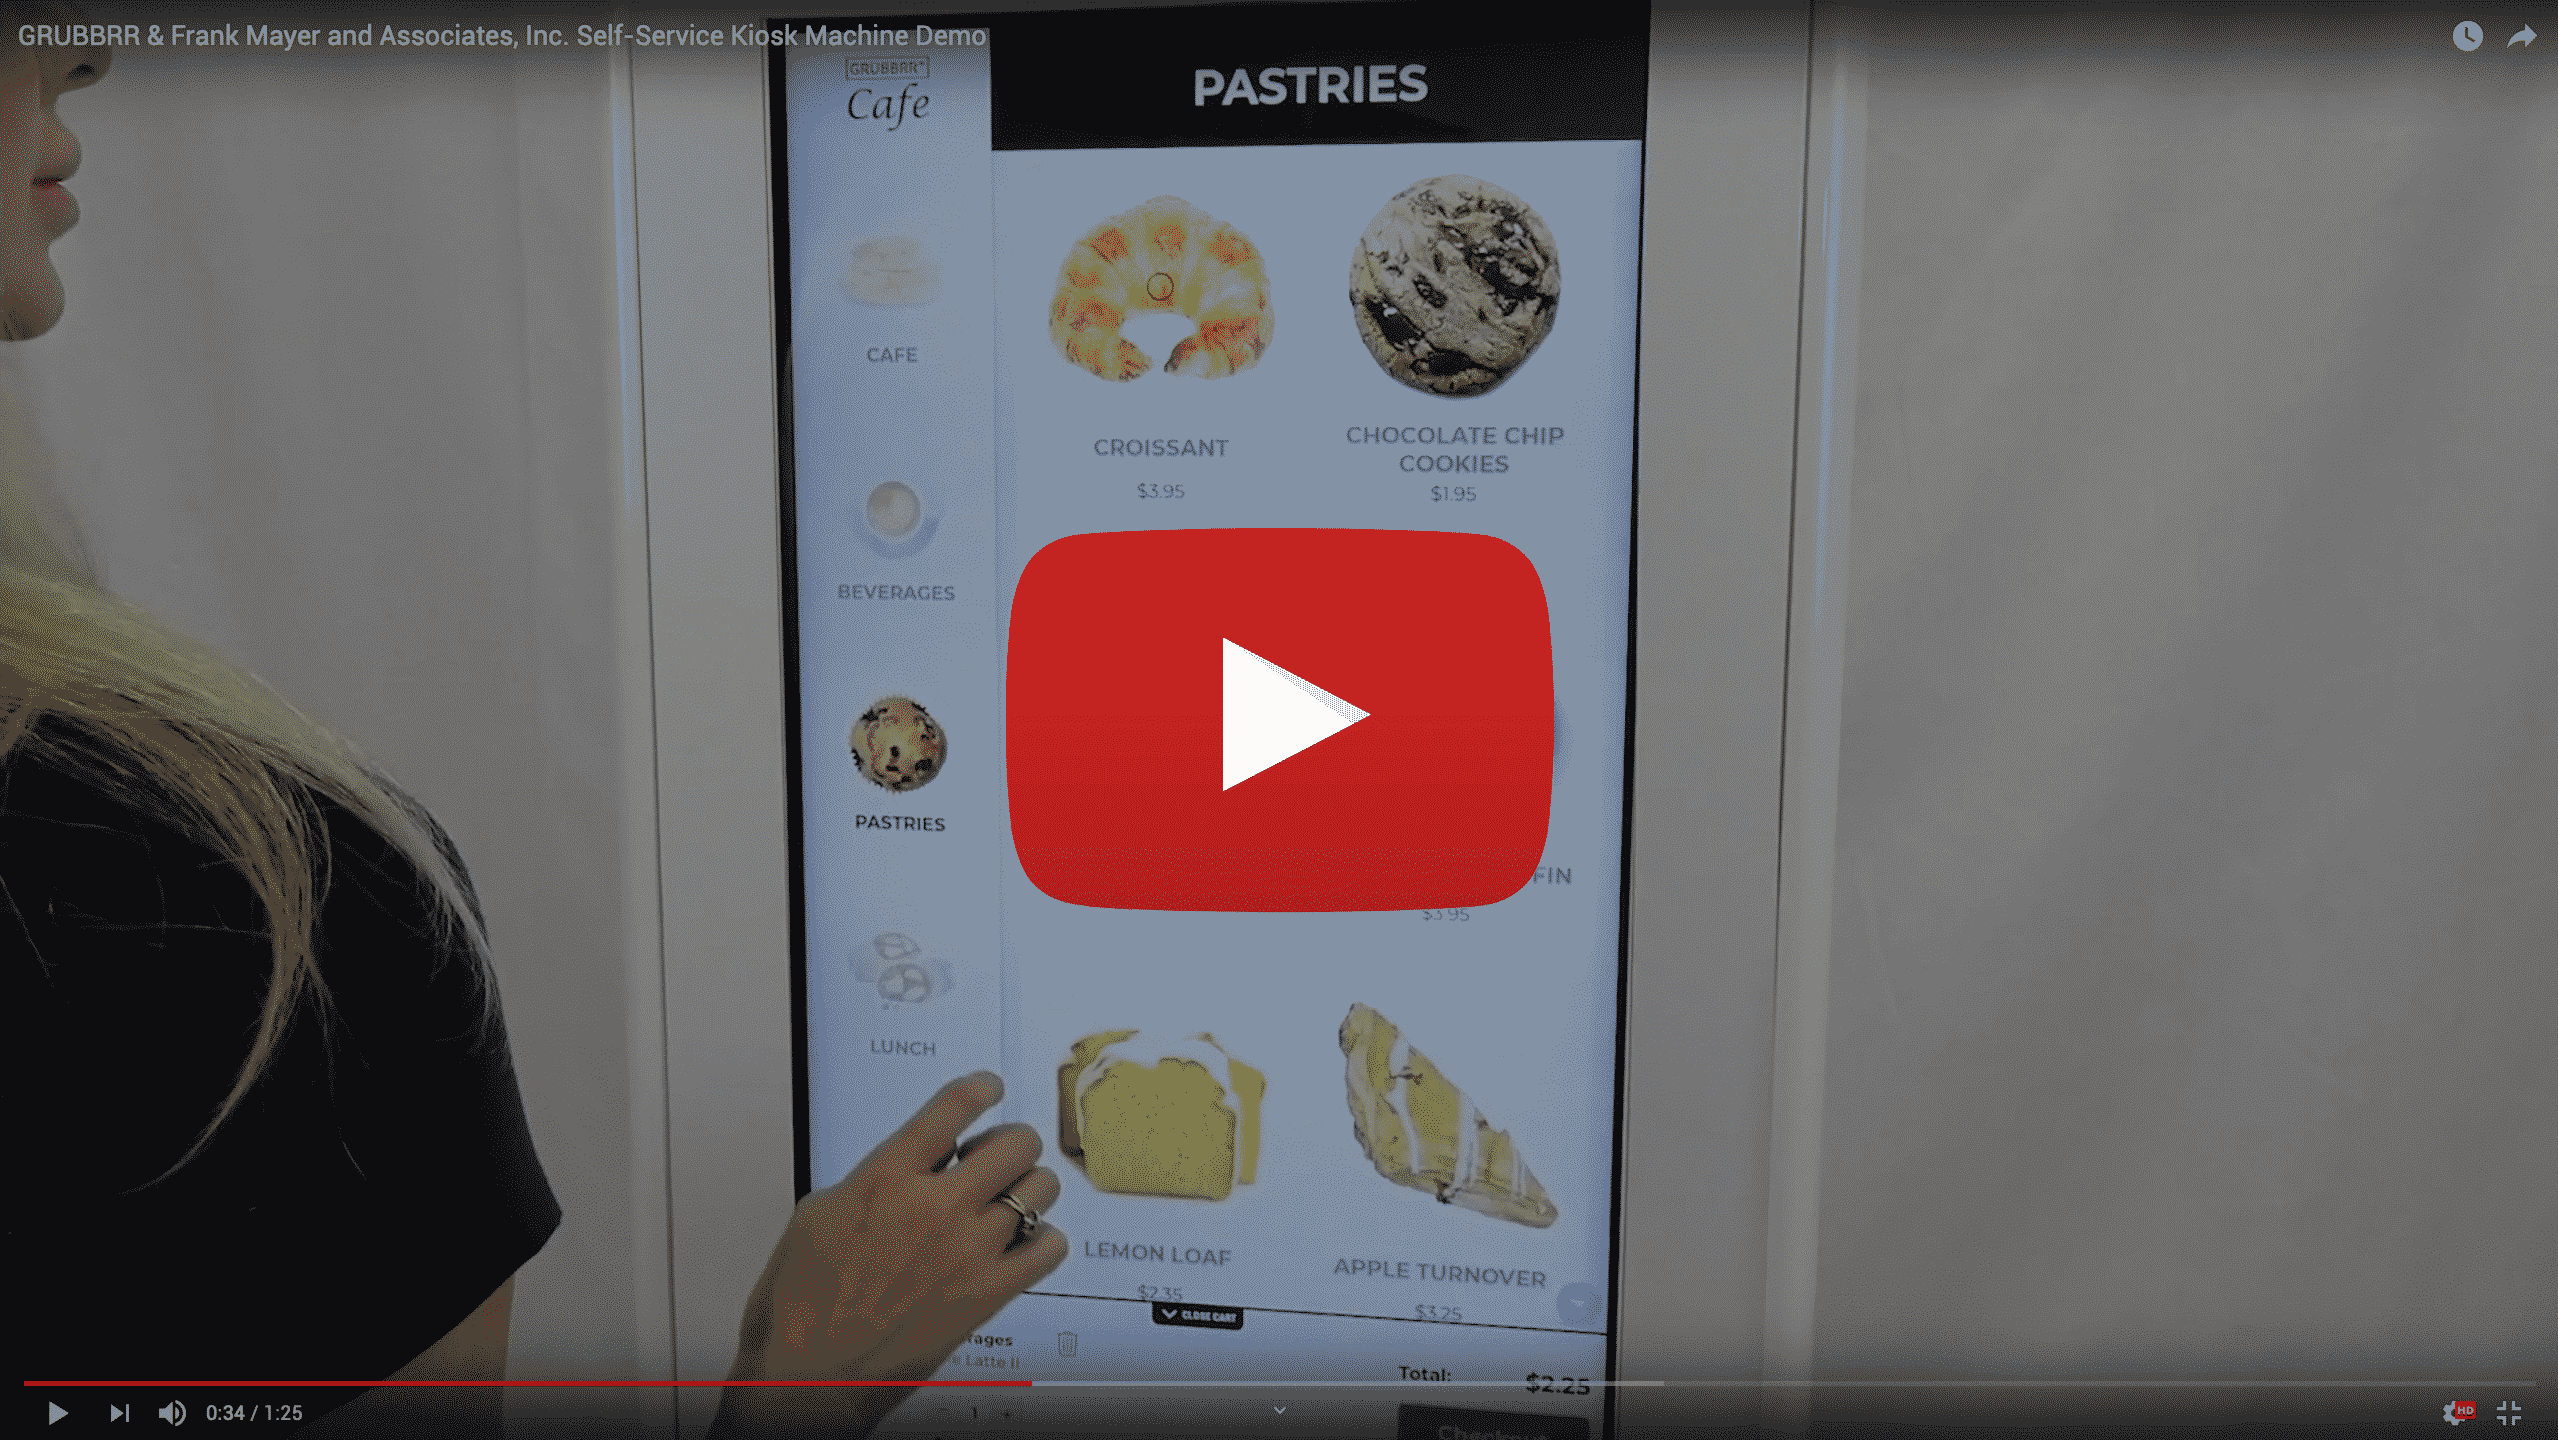 Watch Our Self-Service Kiosk Machine Demo